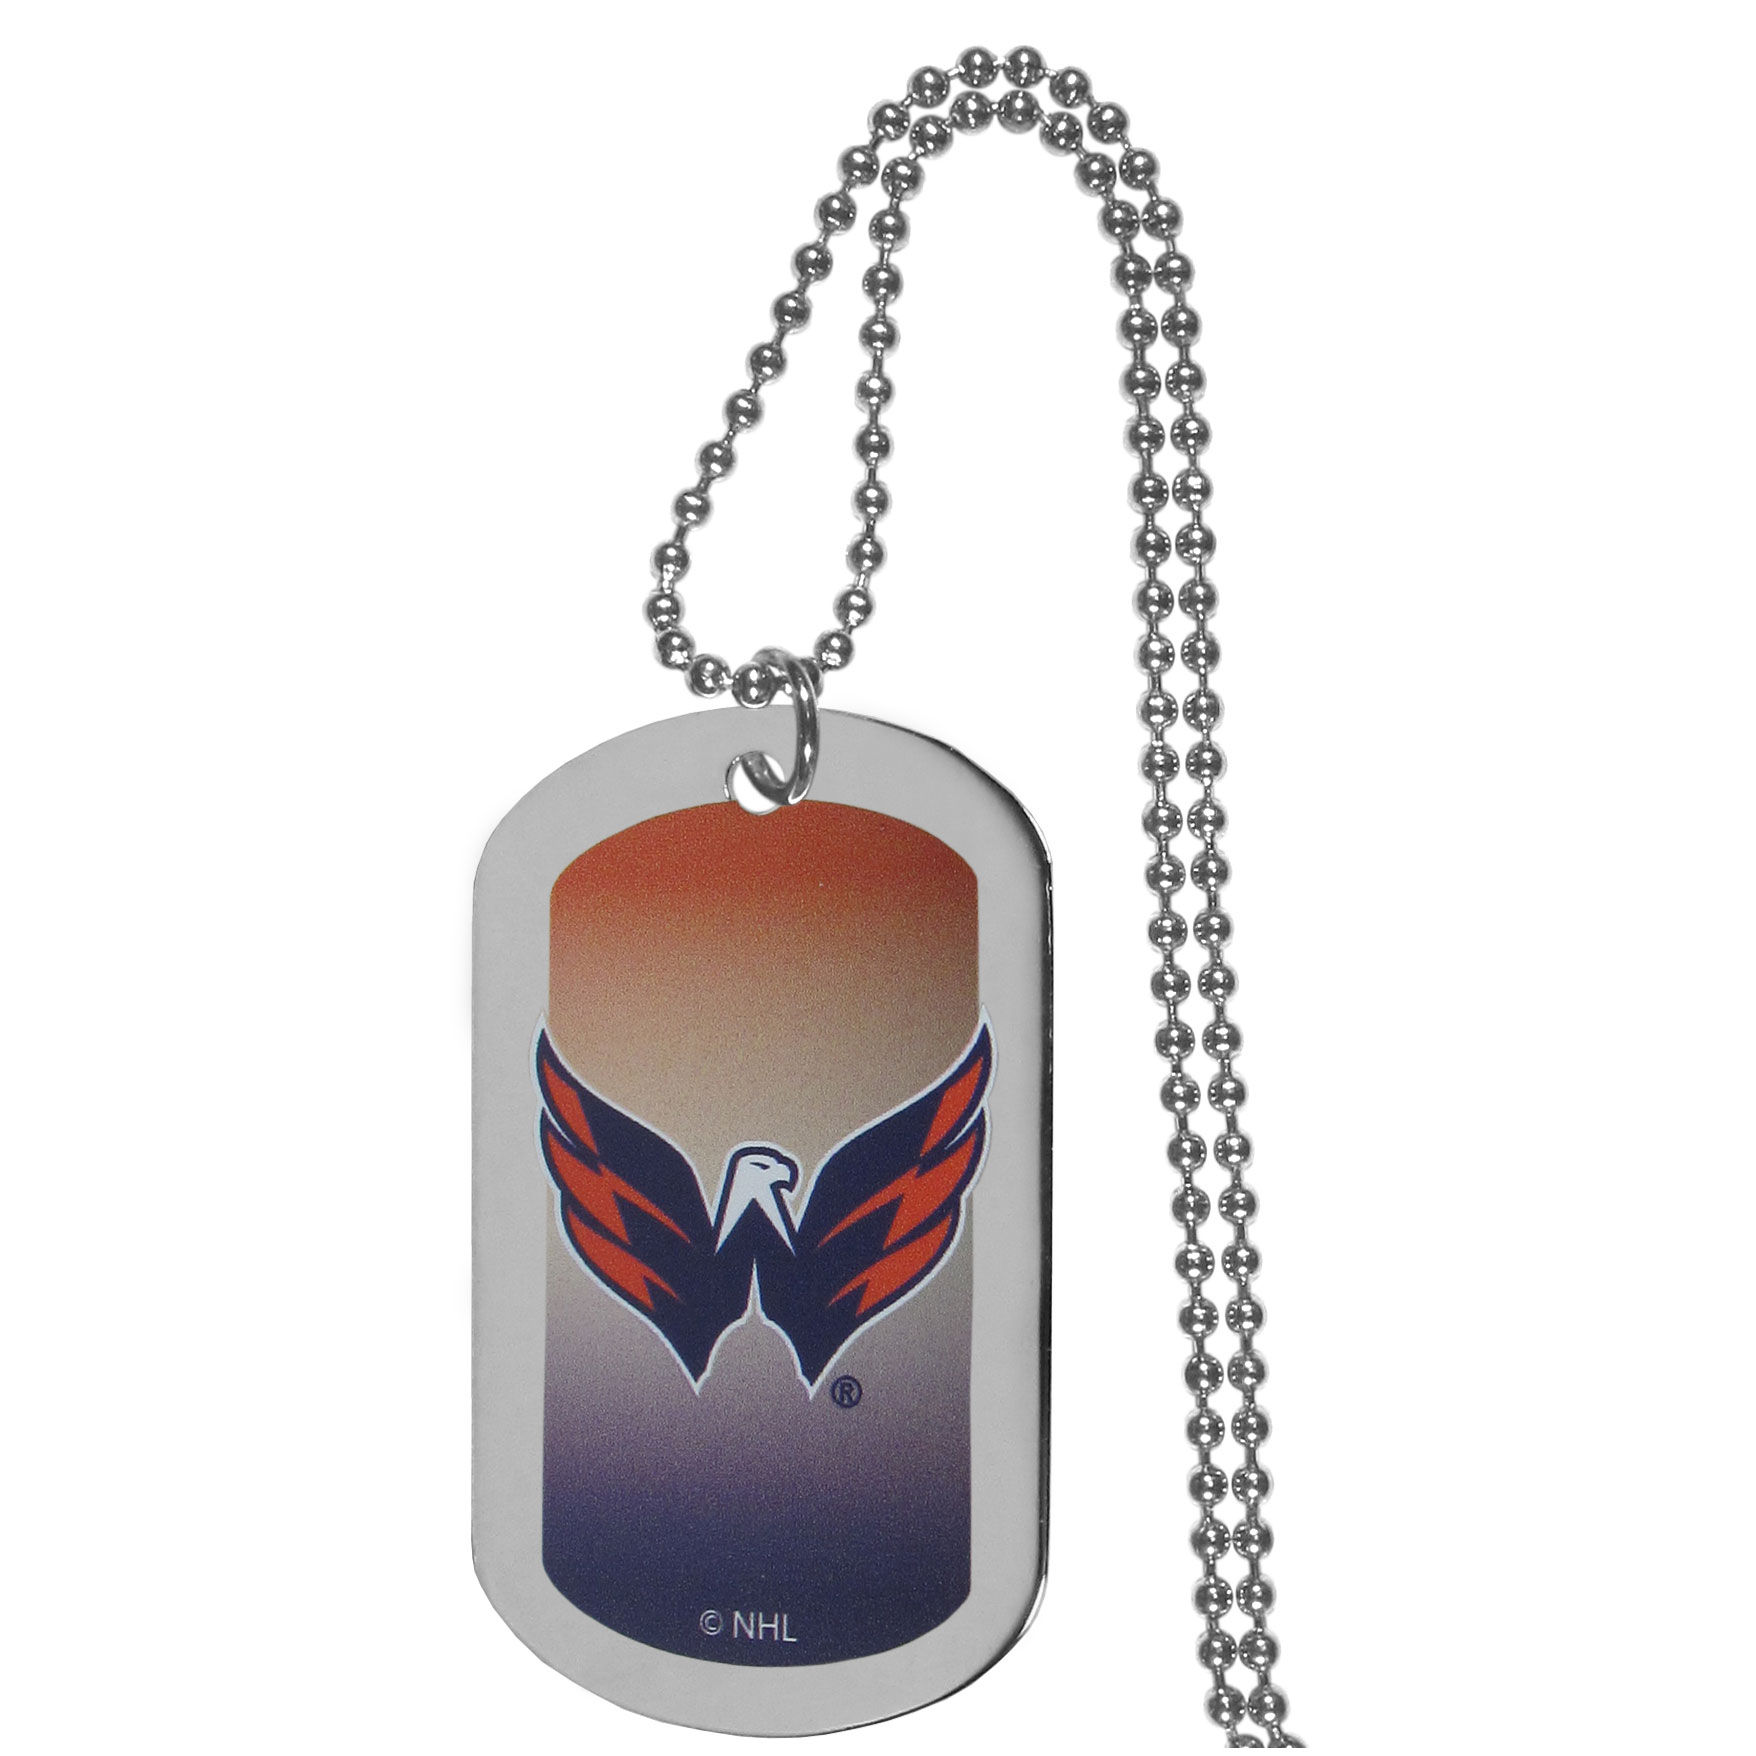 Washington Capitals® Team Tag Necklace - Dog tag necklaces are a fashion statement that is here to stay. The sporty version of the classic tag features a gradient print in team colors featuring a full color team logo over a high polish tag to create a bold and sporty look. The tag comes on a 26 inch ball chain with a ball and joint clasp. Any Washington Capitals® would be proud to wear this attractive fashion accessory.